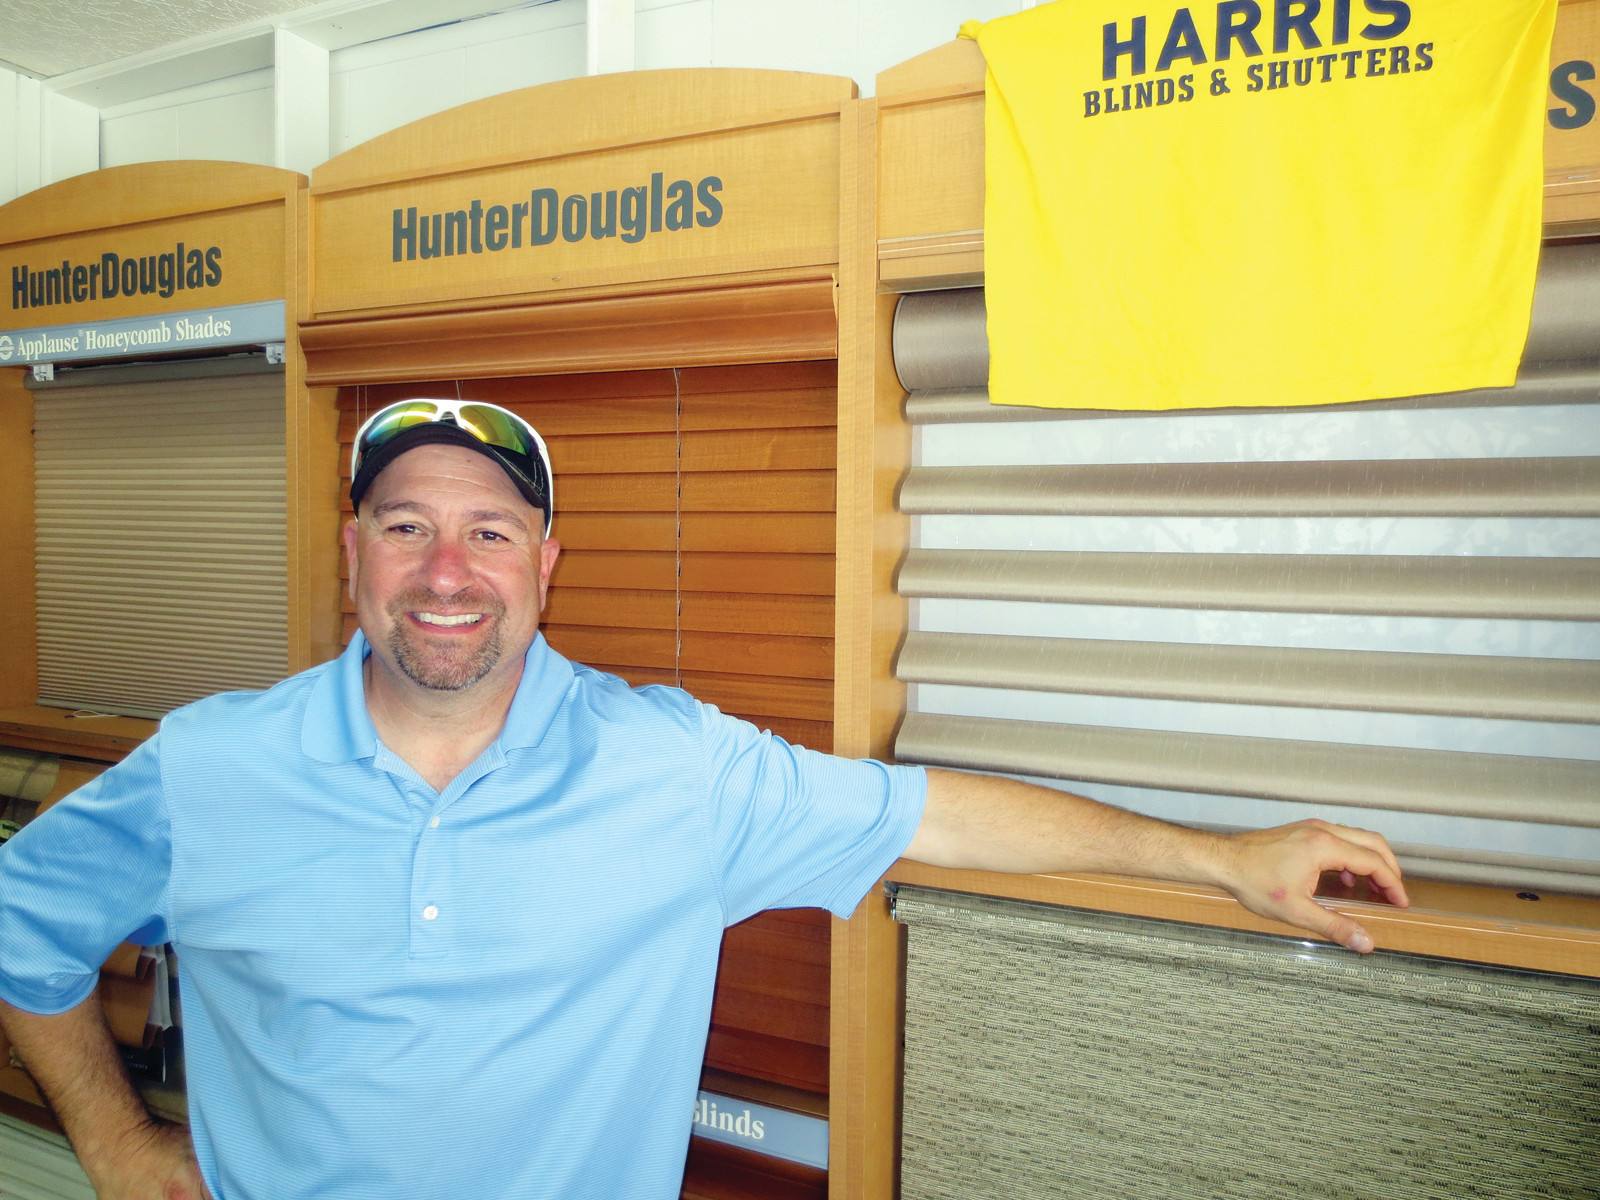 Harris Alkins, the longtime owner of Harris Blinds & Shutters, has been helping home and business owners for over three decades.  His customers reach far and wide, and he gives everyone 100% of his effort and time every time– give him a call today to set up your free consultation.